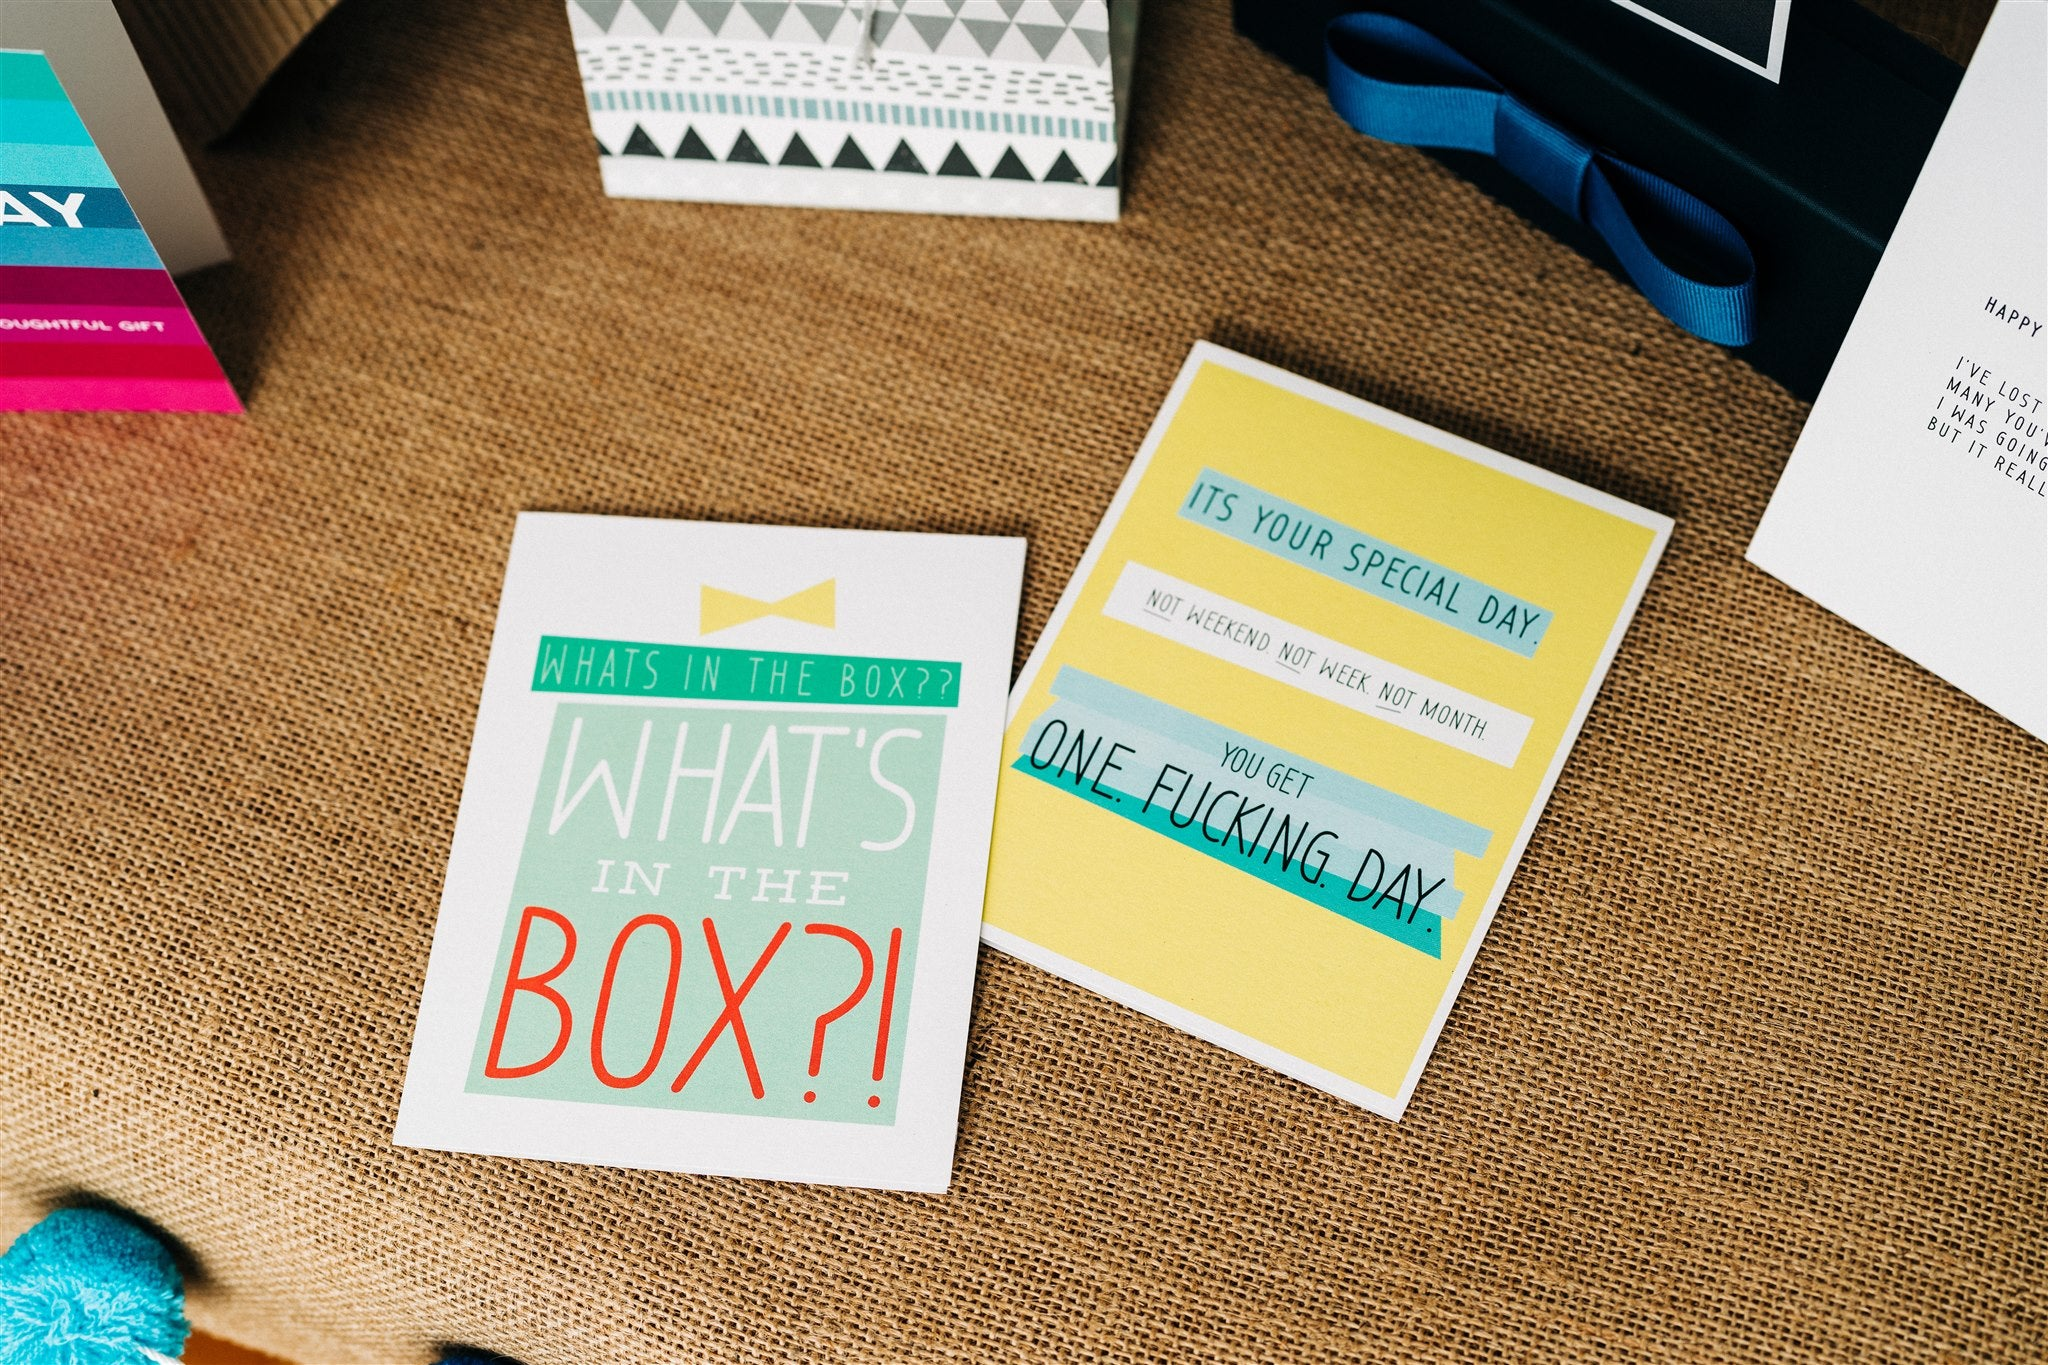 """Sarcastic and funny birthday greeting cards that read """"What's in the box?!"""" and """"You get one fucking day""""."""